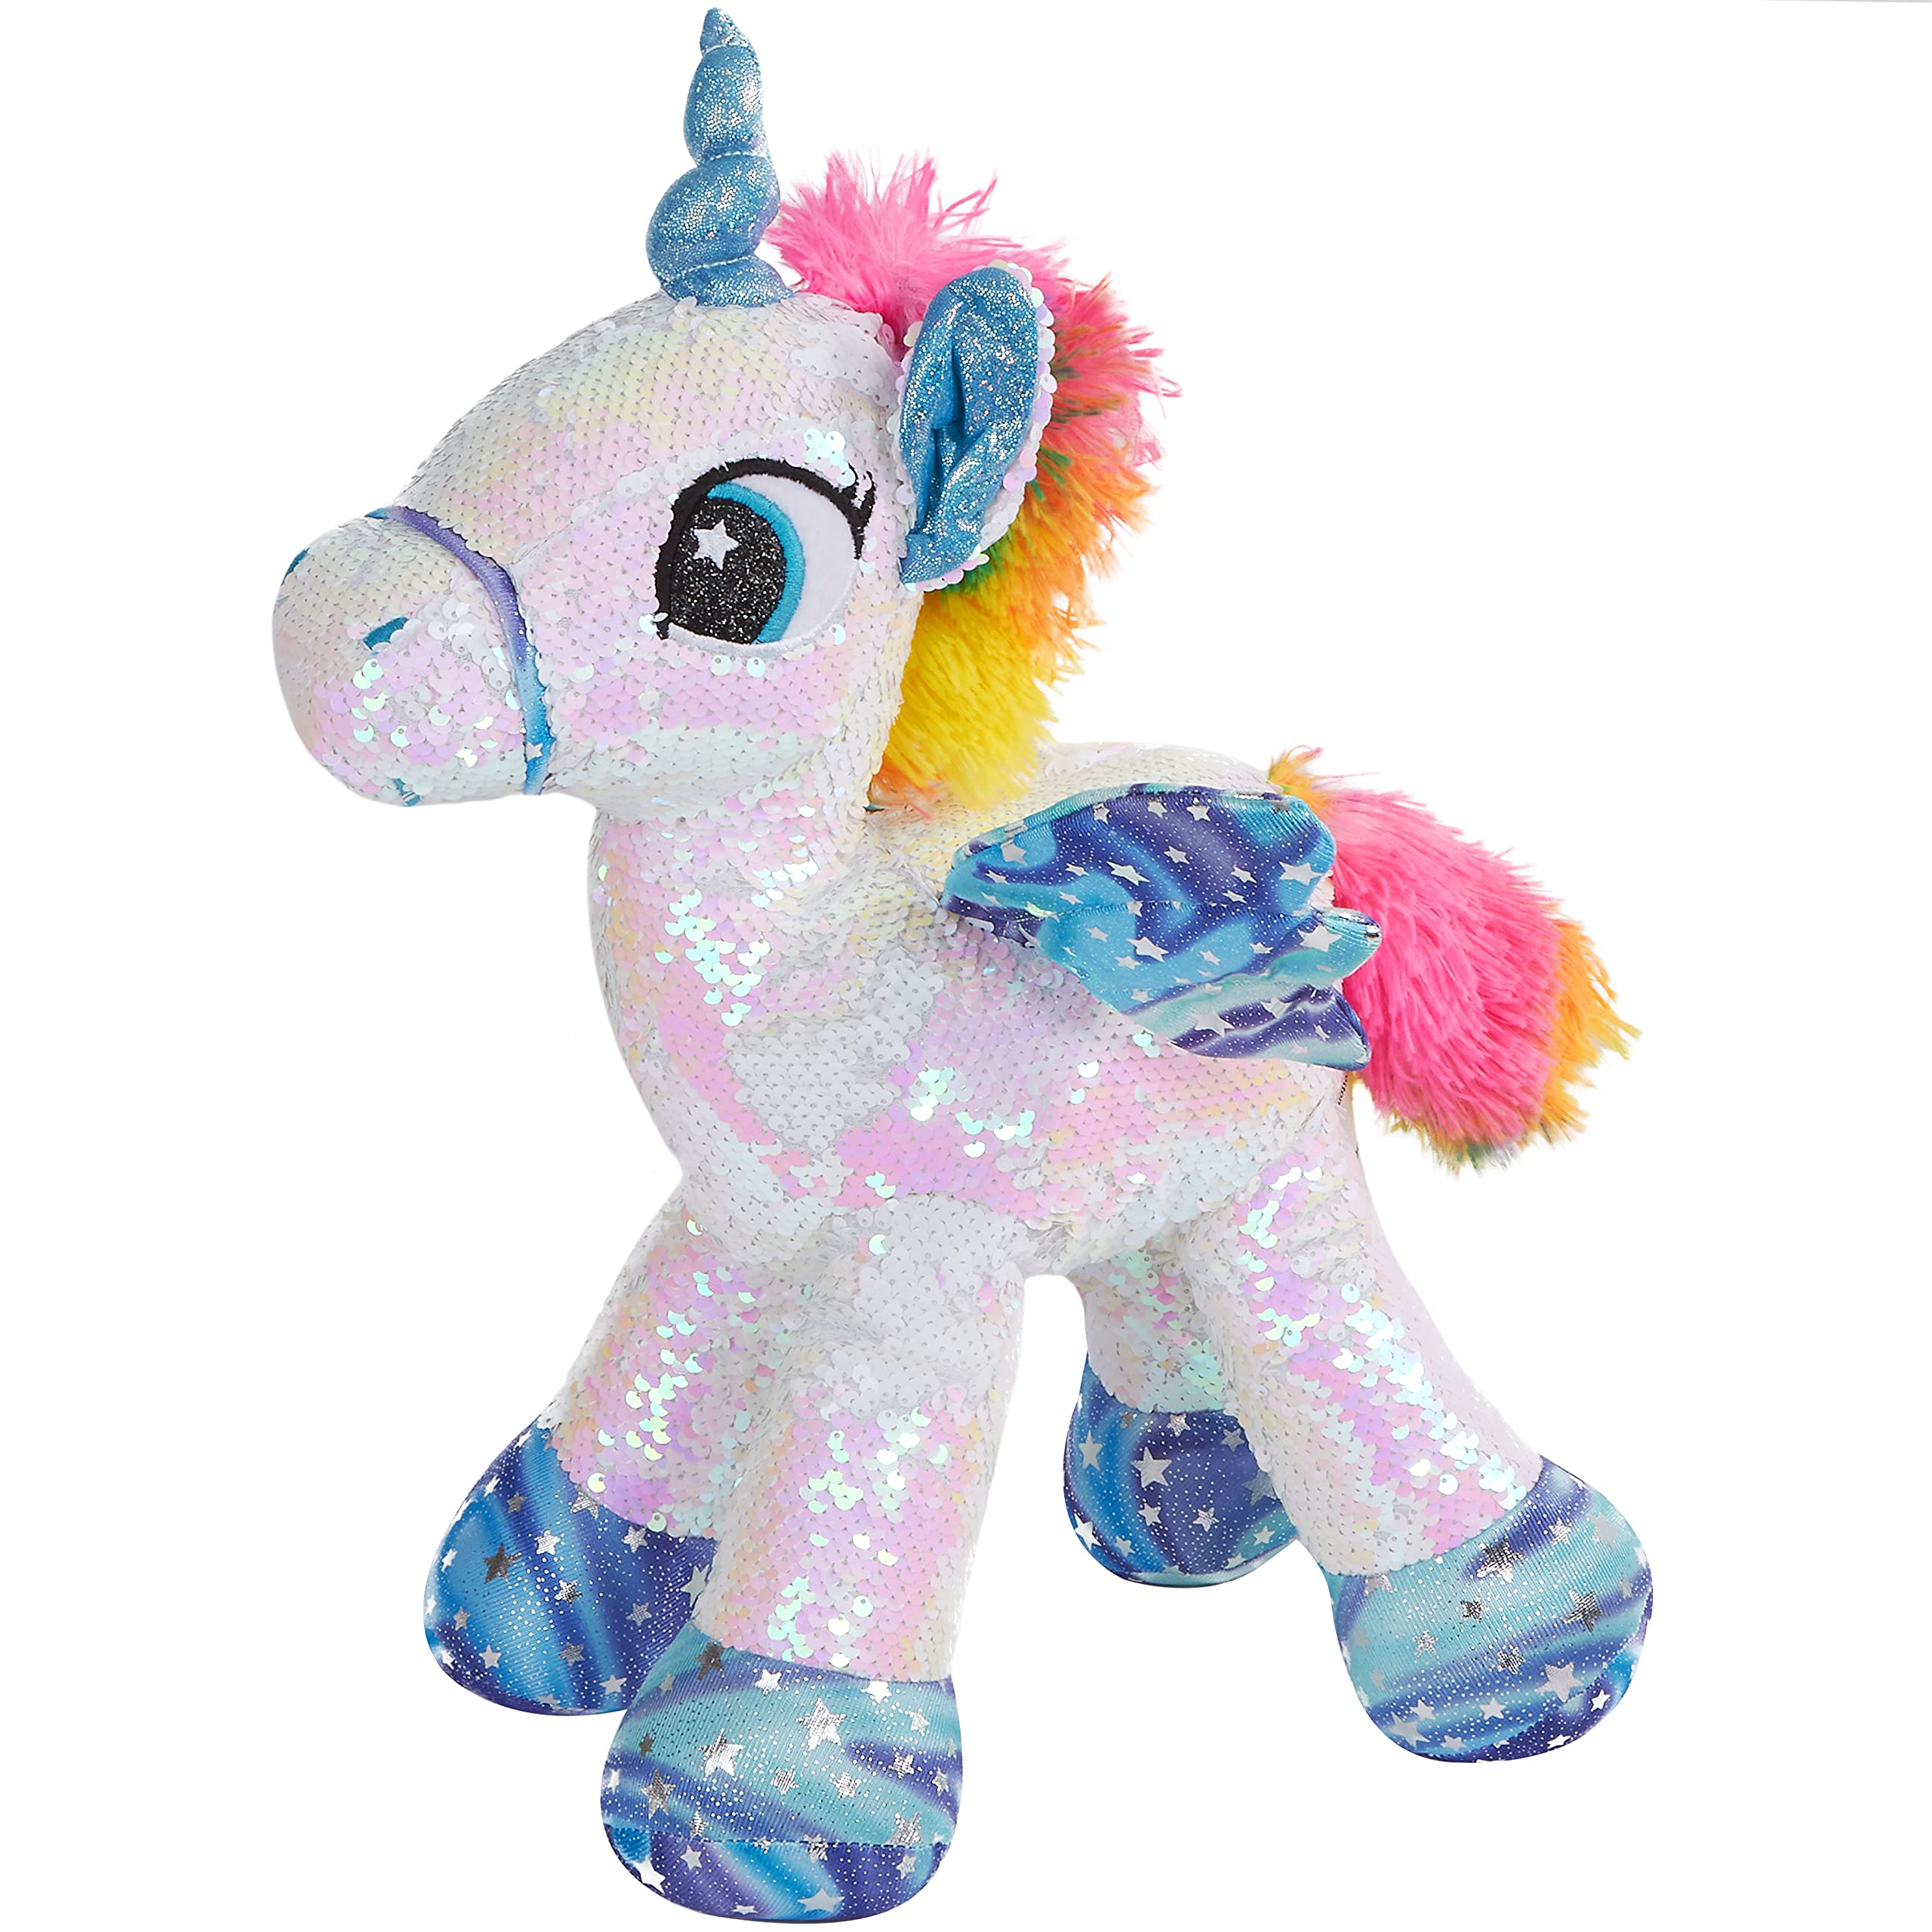 Athoinsu Flippable Sequin Unicorn Stuffed Animal Sparkle Plush Toys with Reversible Glitter Two-Side Sequins Nice Gifts for Kids Friends, White, 18''